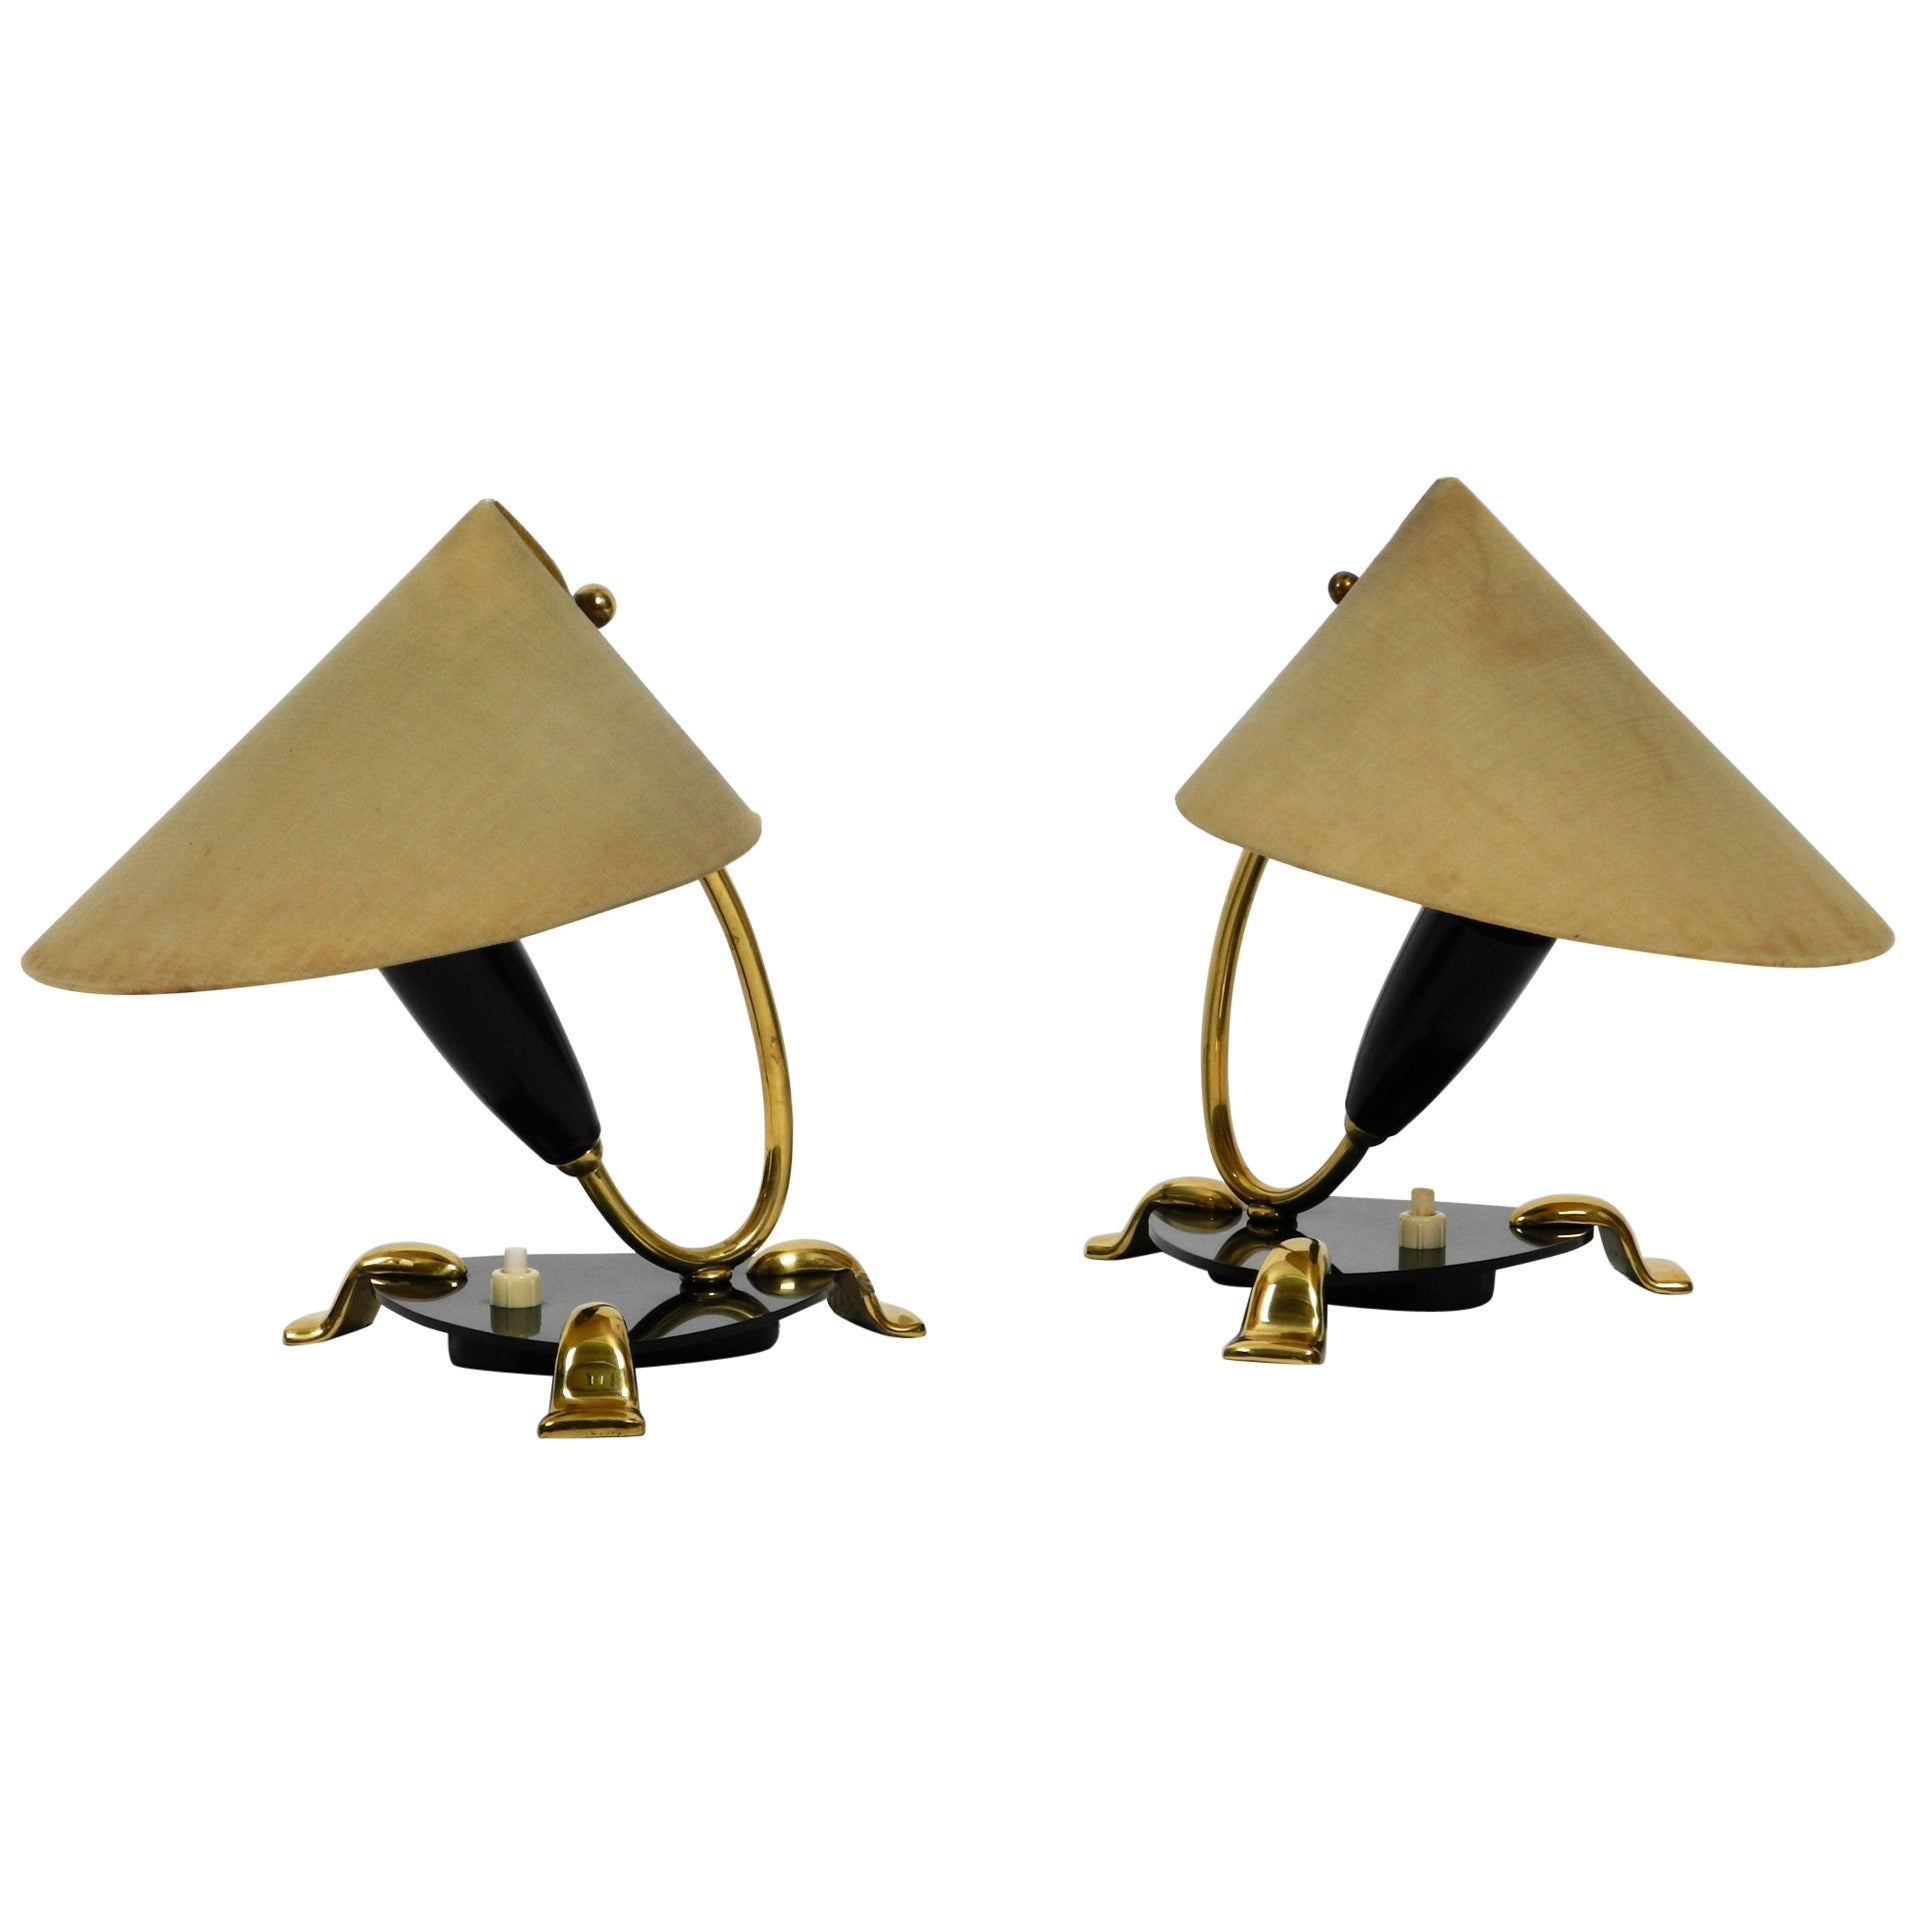 Pair of Midcentury Bedside Lamps Made of Brass and Plexiglass with Fabric Shades